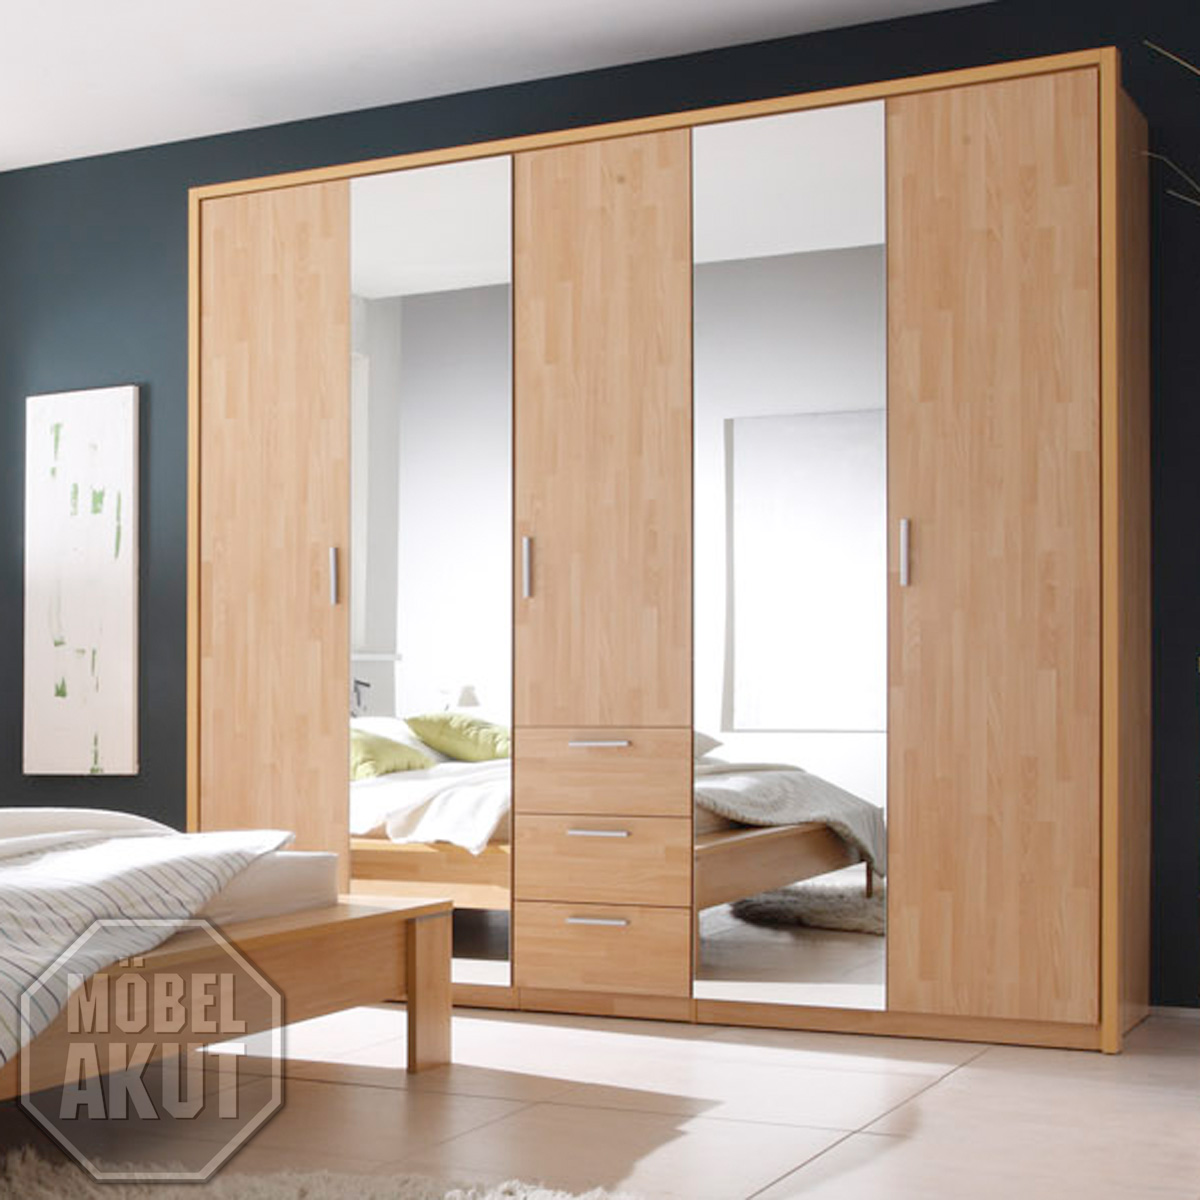 kleiderschrank schiebet ren buche. Black Bedroom Furniture Sets. Home Design Ideas